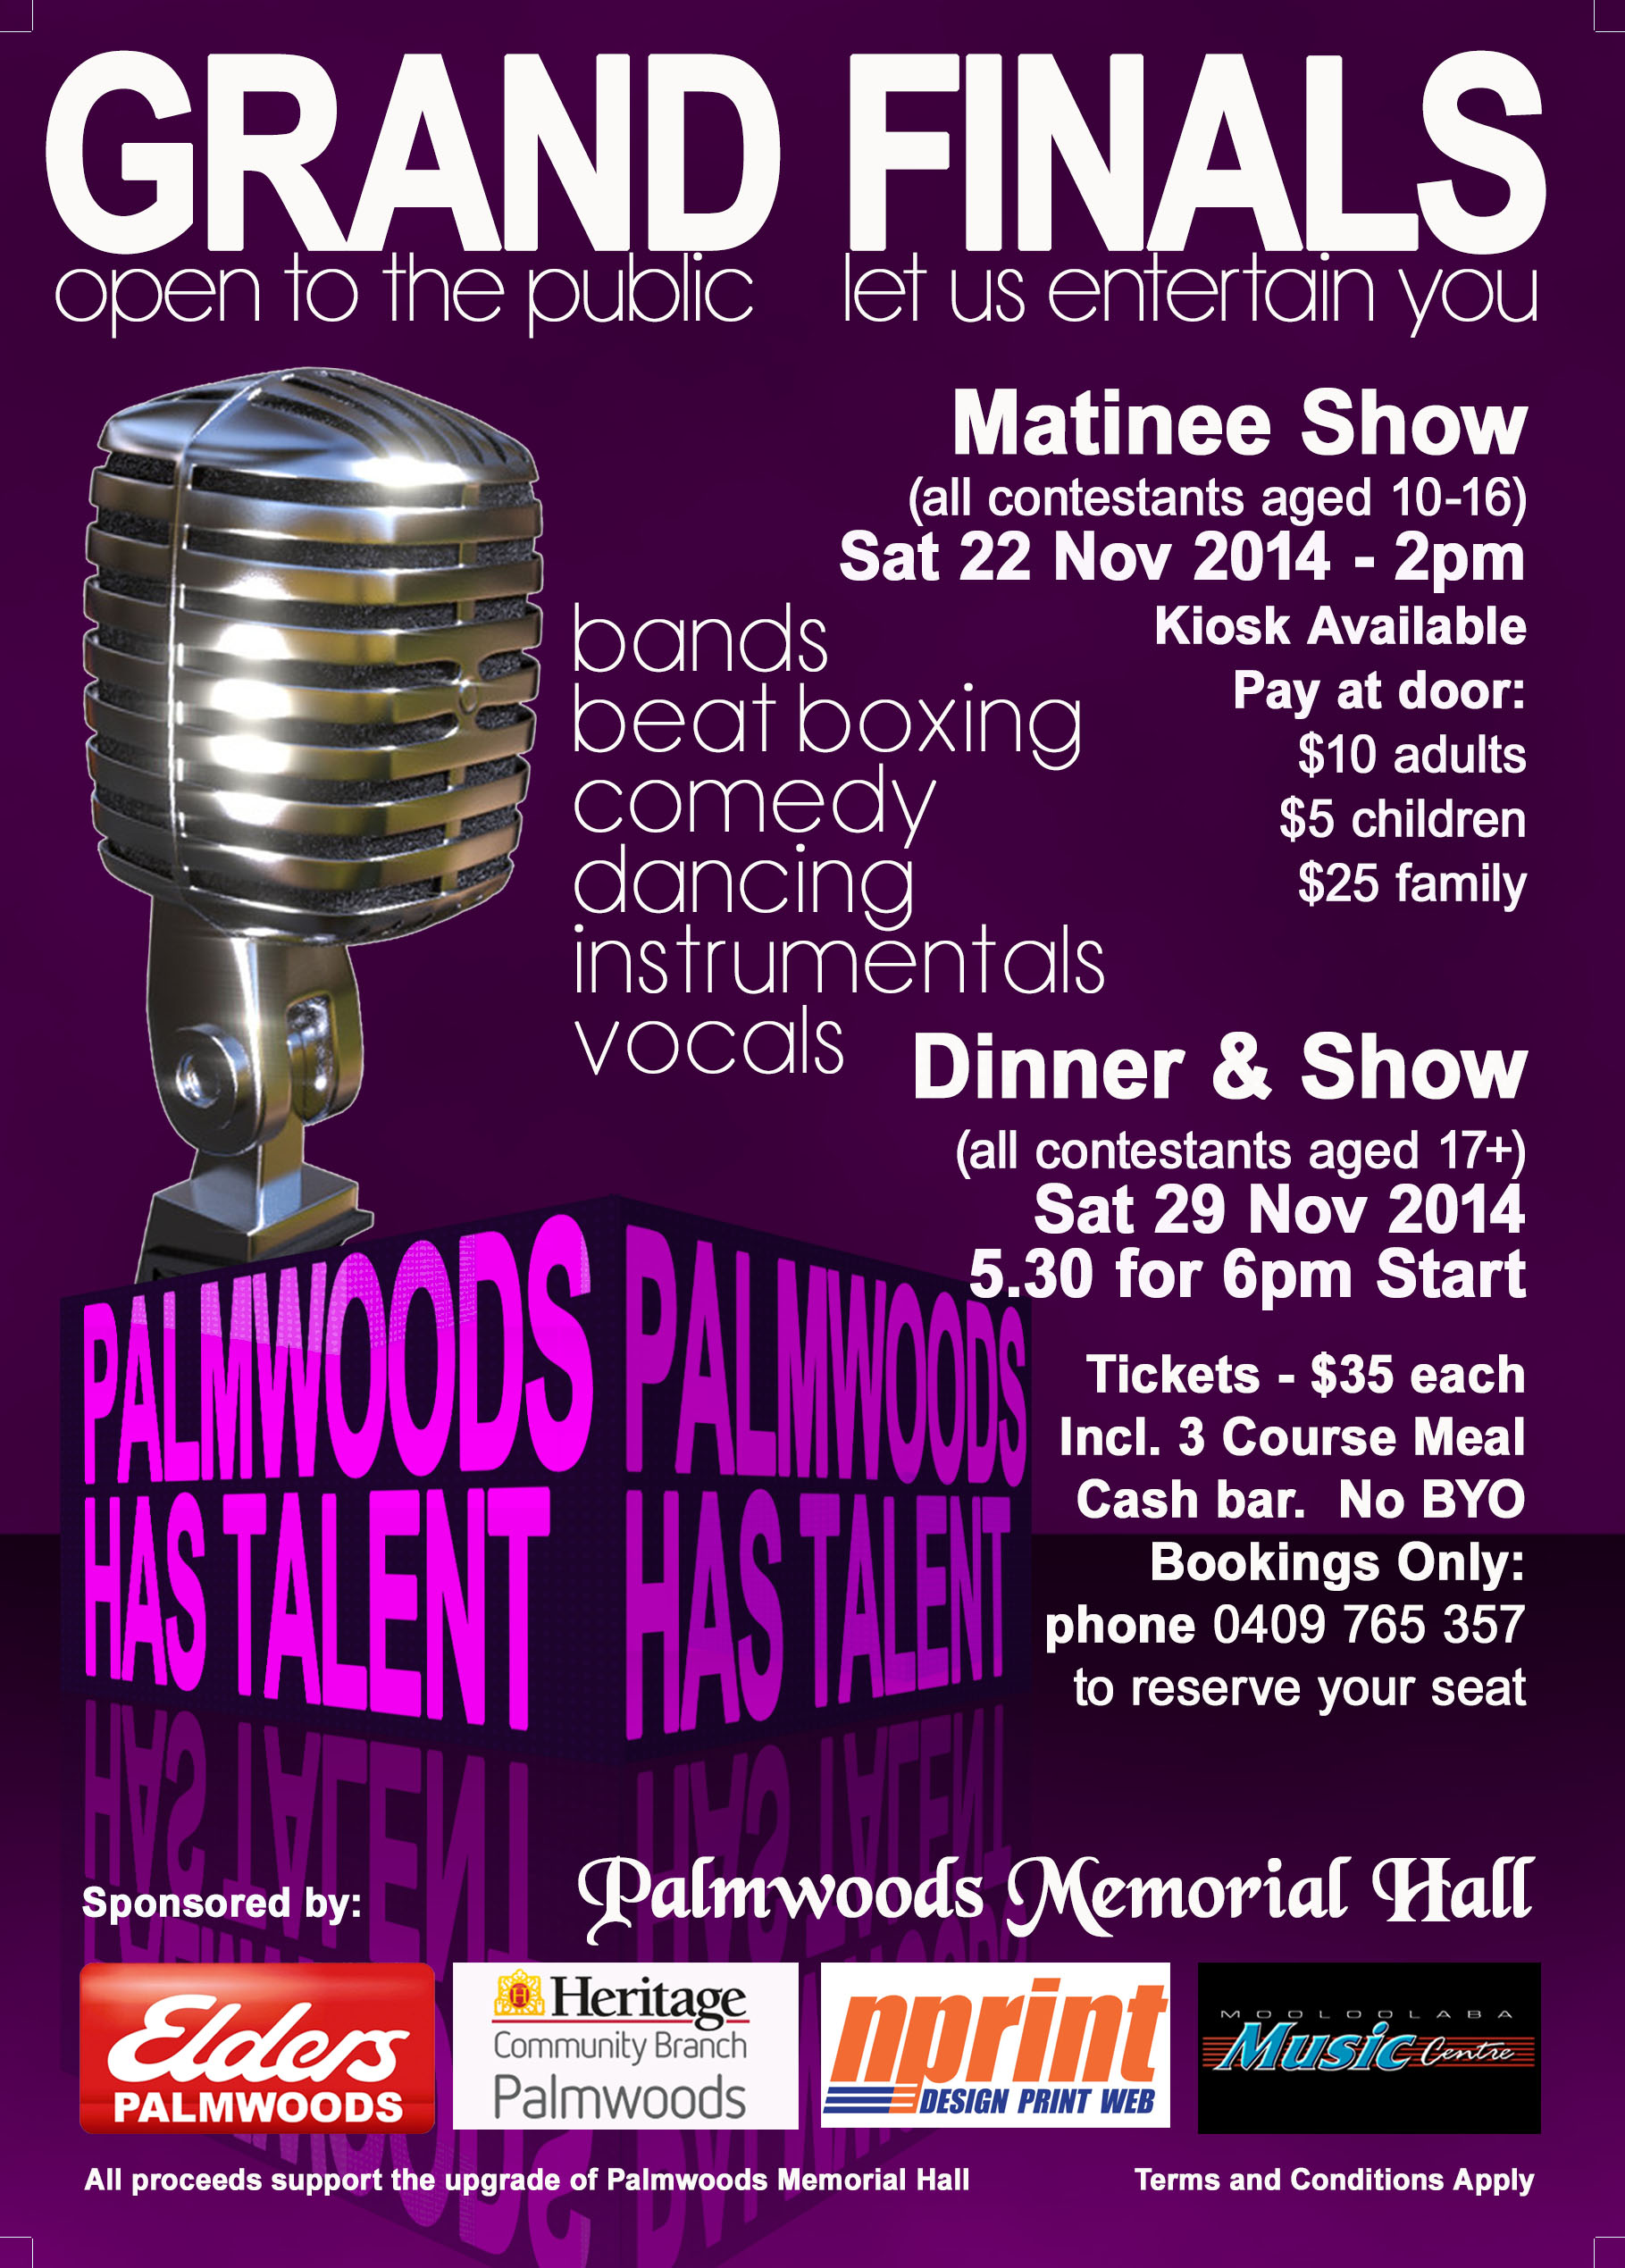 Palmwoods Has Talent